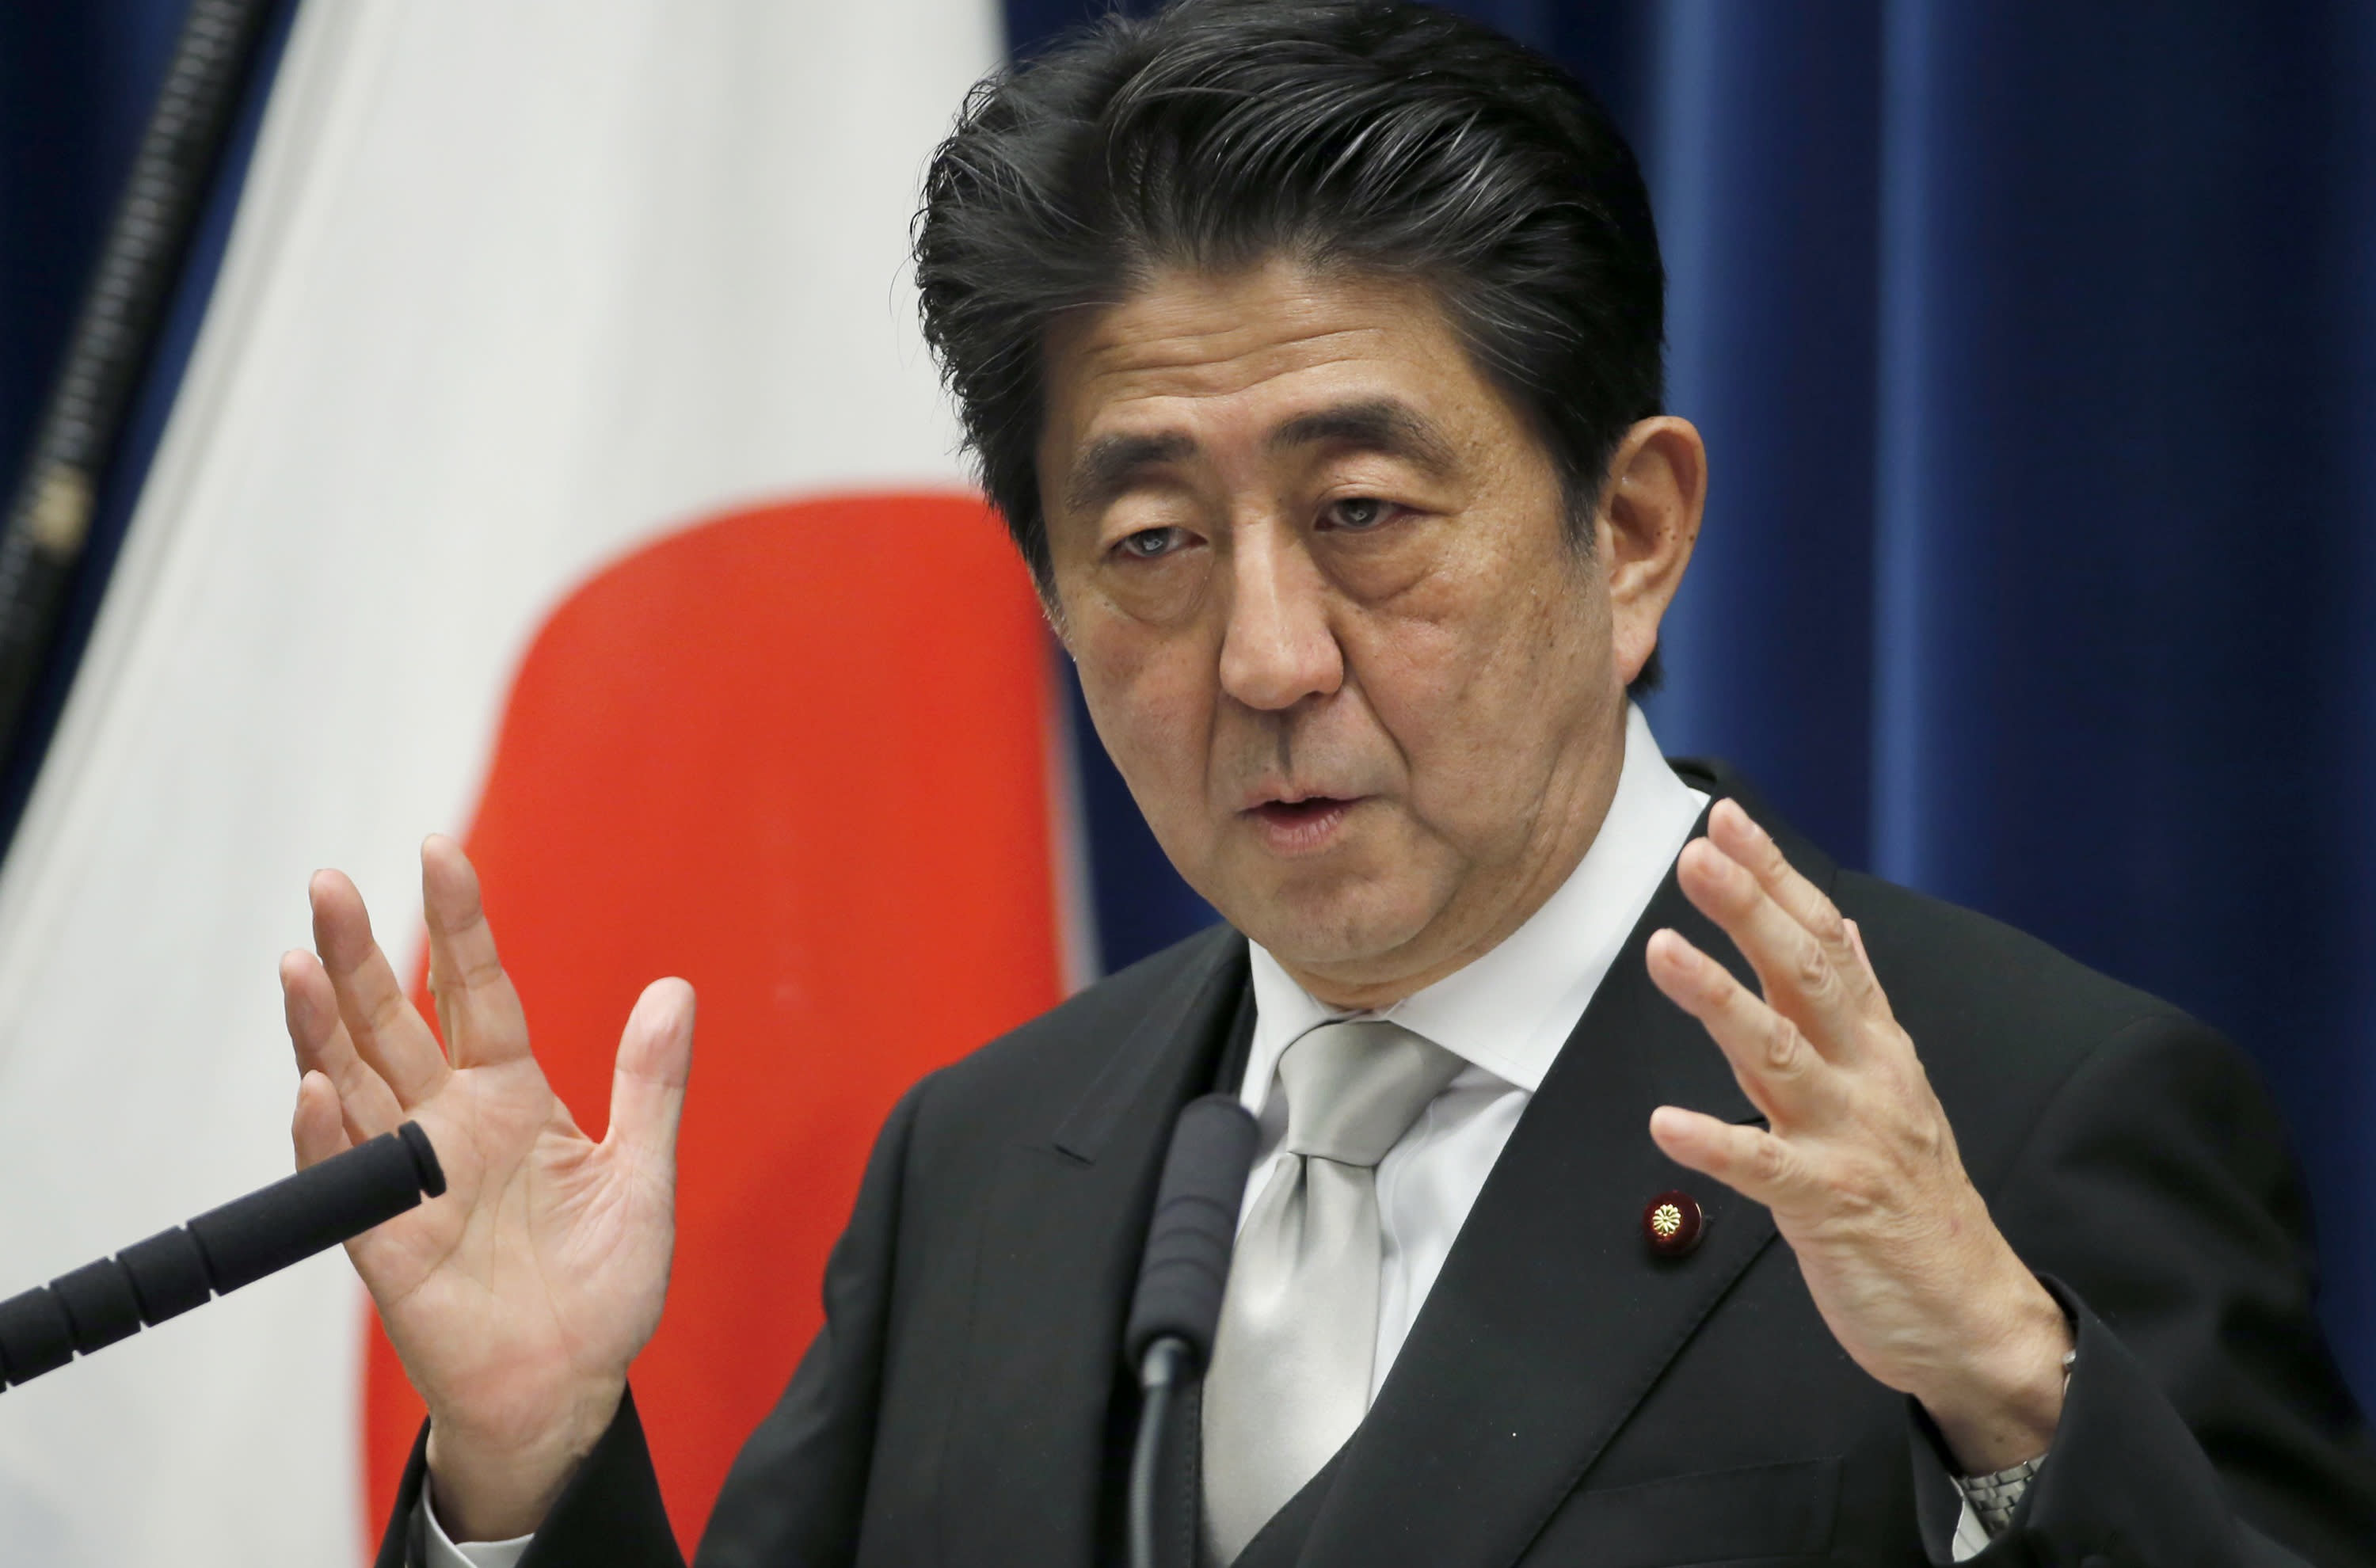 Abe takes office for 3rd term as Japan's leader